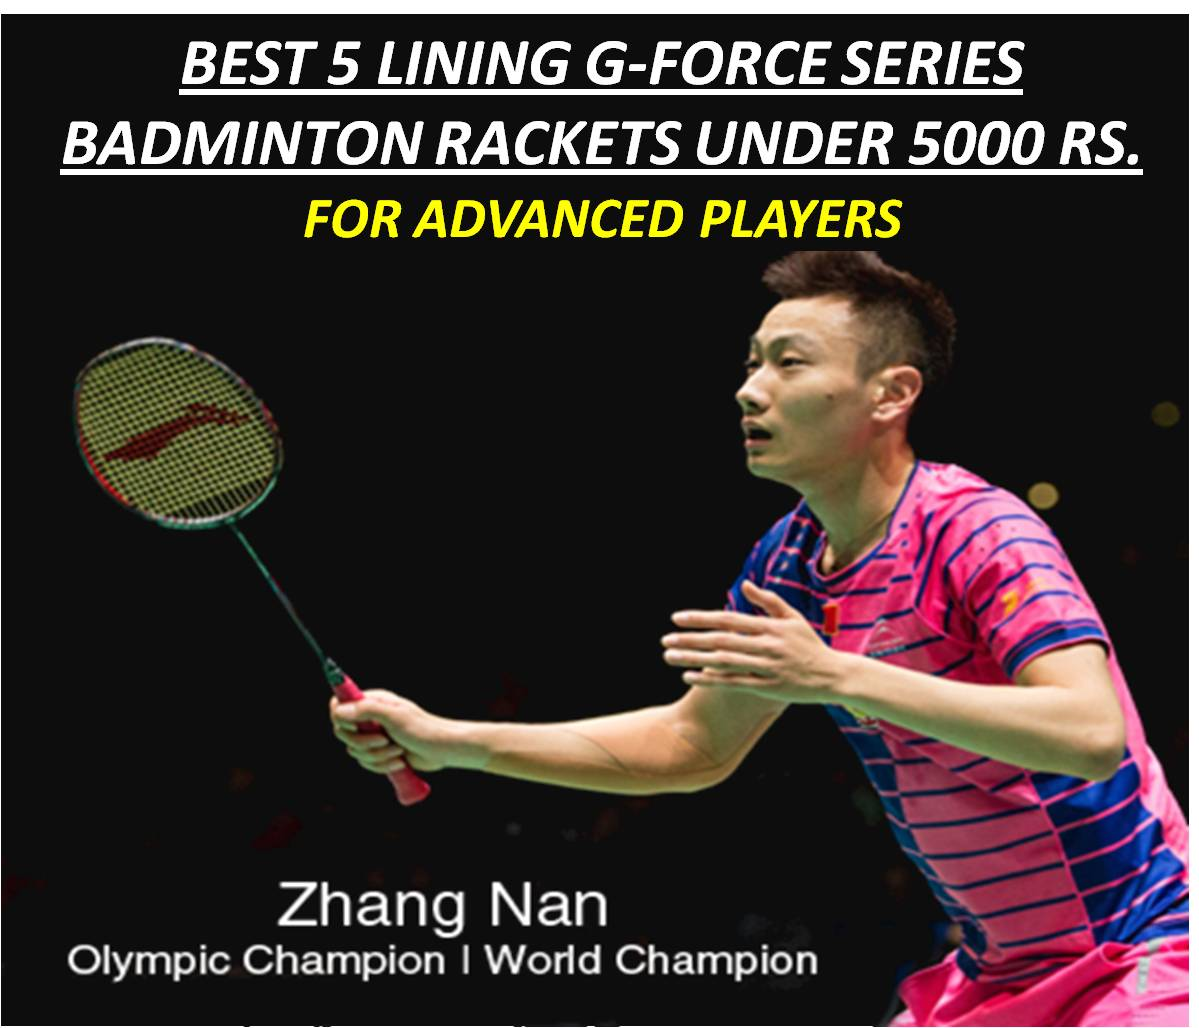 best 5 lining g force series racket under 5000 Rs for Advanced Player